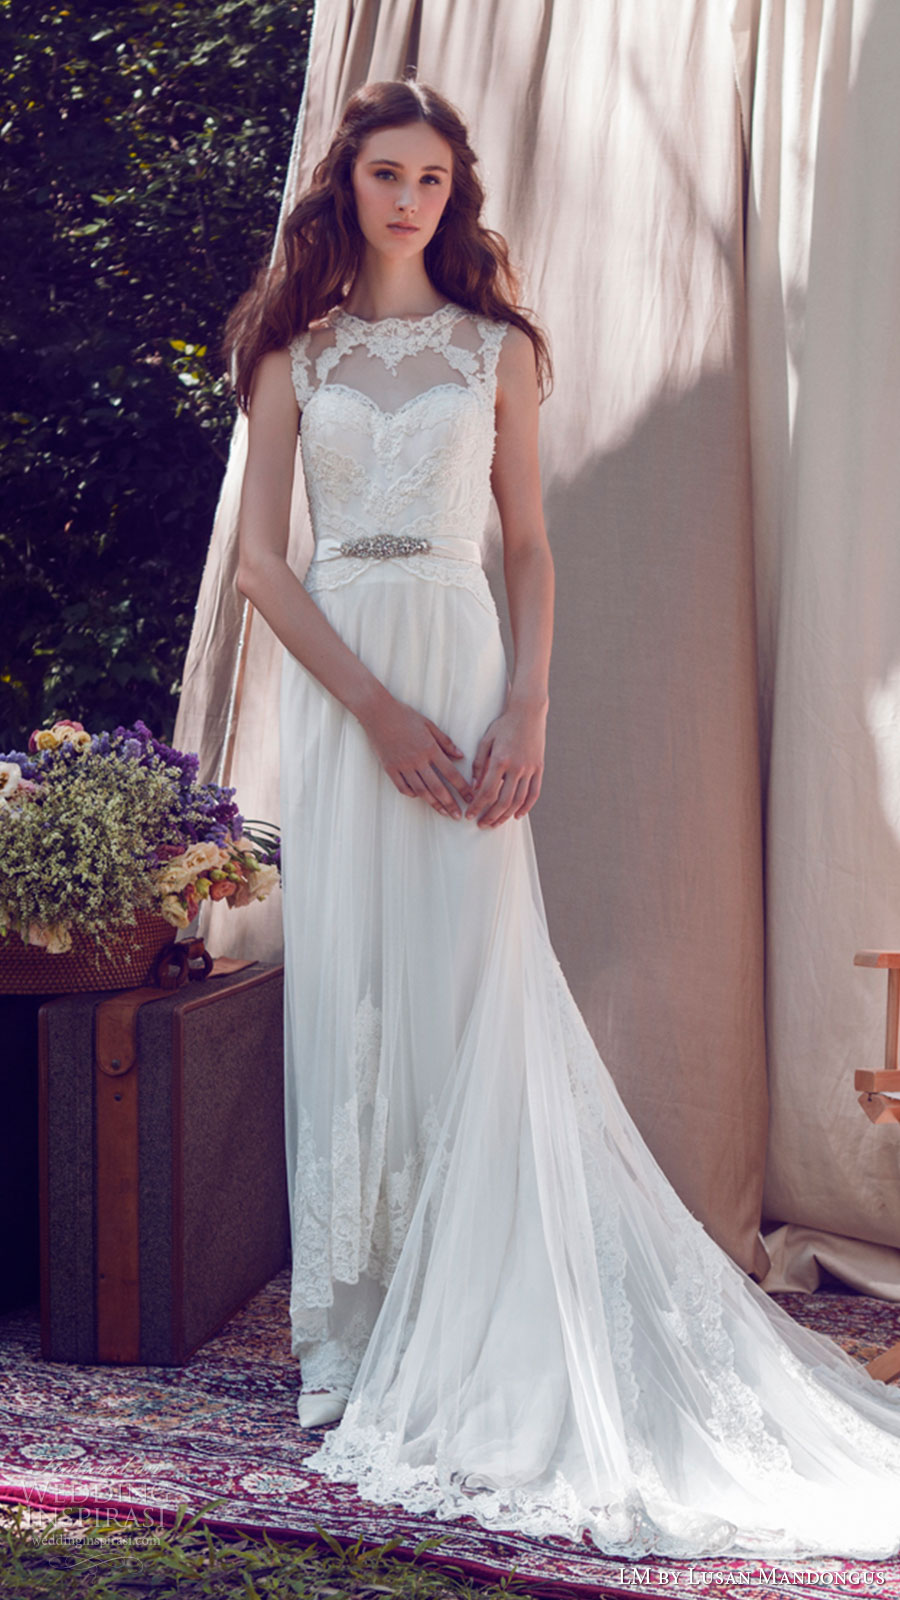 lm lusan mandongus bridal 2017 sleeveless illusion jewel neck lace sheath wedding dress (lm3223b) mv train